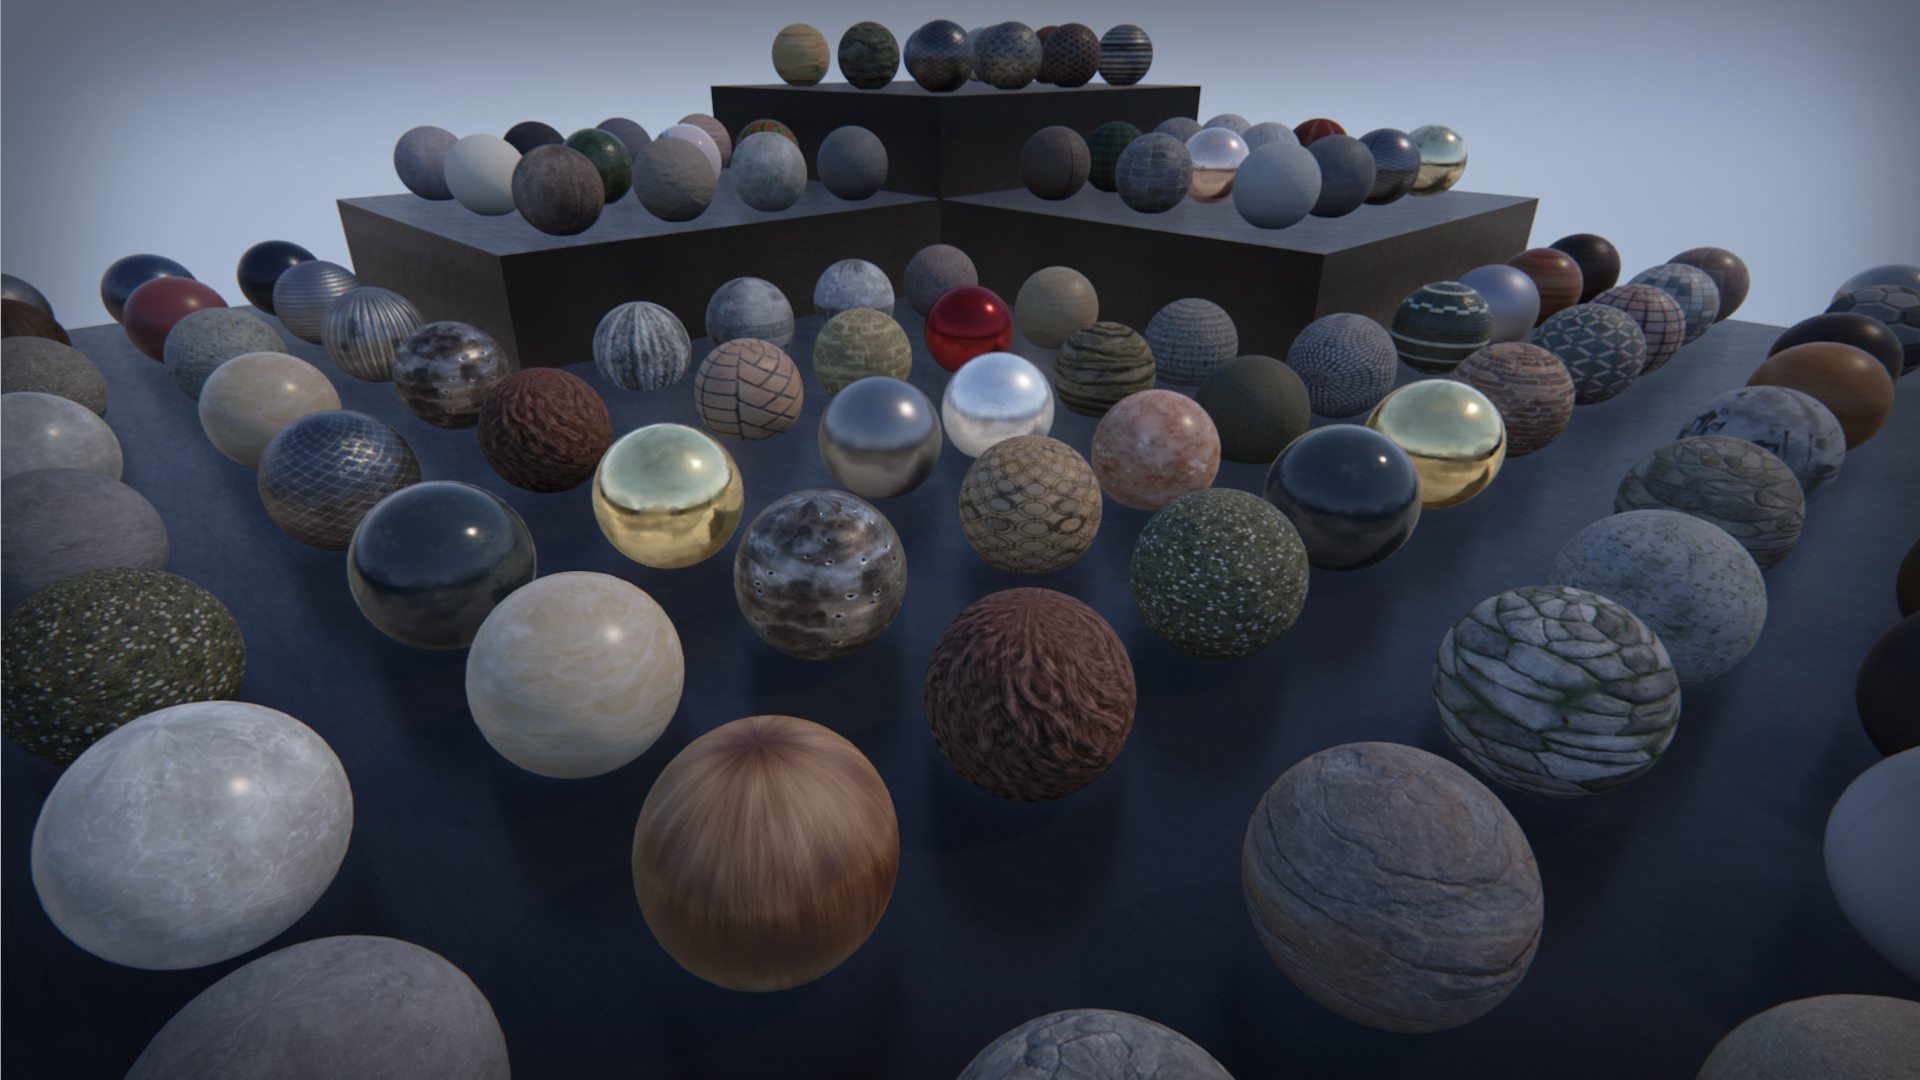 100 PBR Substances by Allegorithmic in Materials - UE4